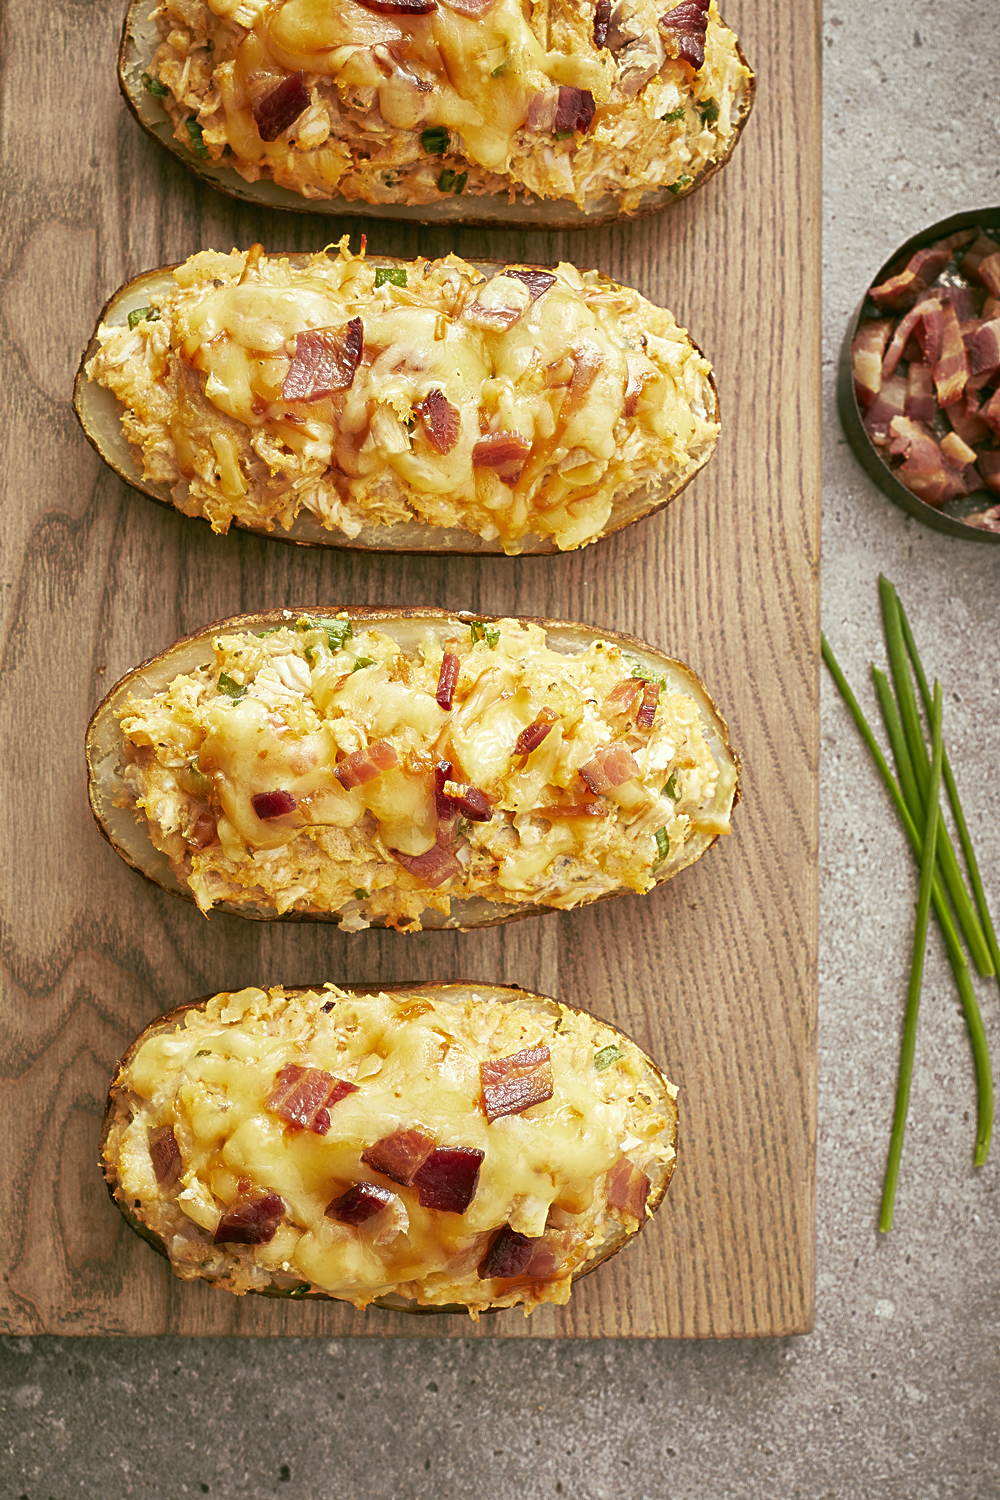 CHICKEN & SMOKEY CHEDDAR STUFFED POTATOES